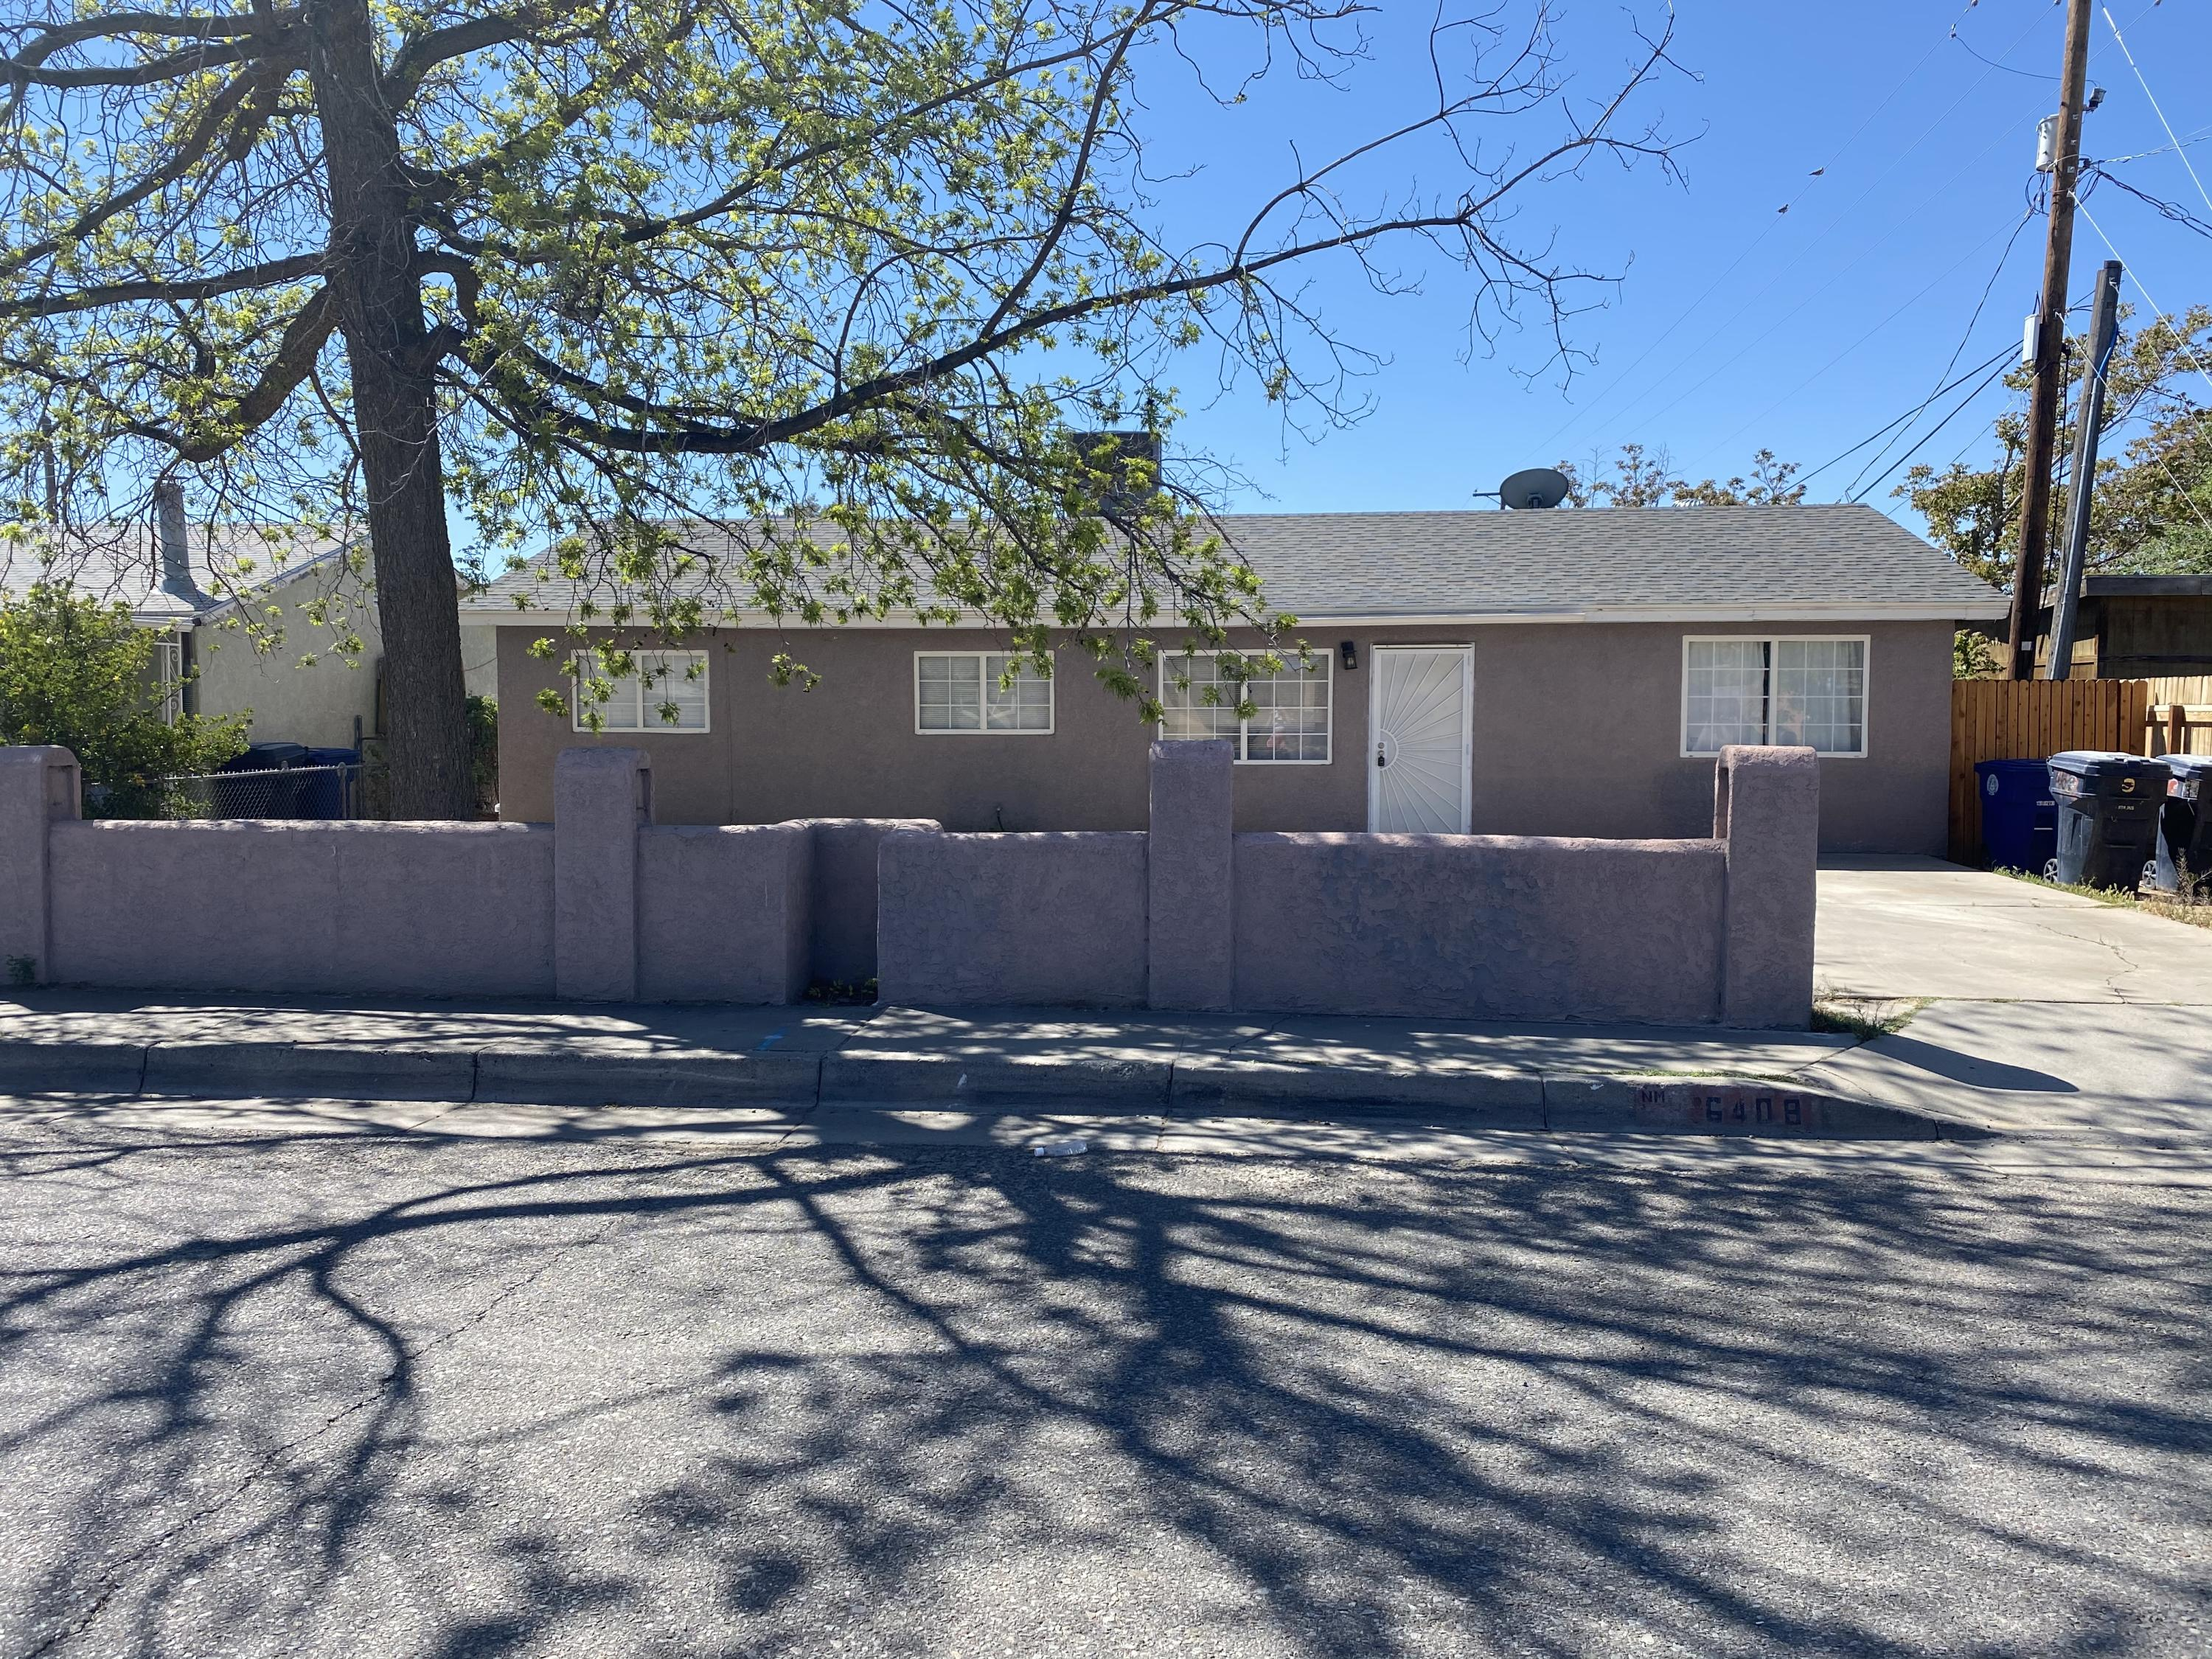 Beautiful well kept home located in the SW of Albuquerque. Home features 4 bedrooms and 2 bathrooms and all appliances convey.  Move in ready. Come check this one out before it's gone. Close to parks and schools.